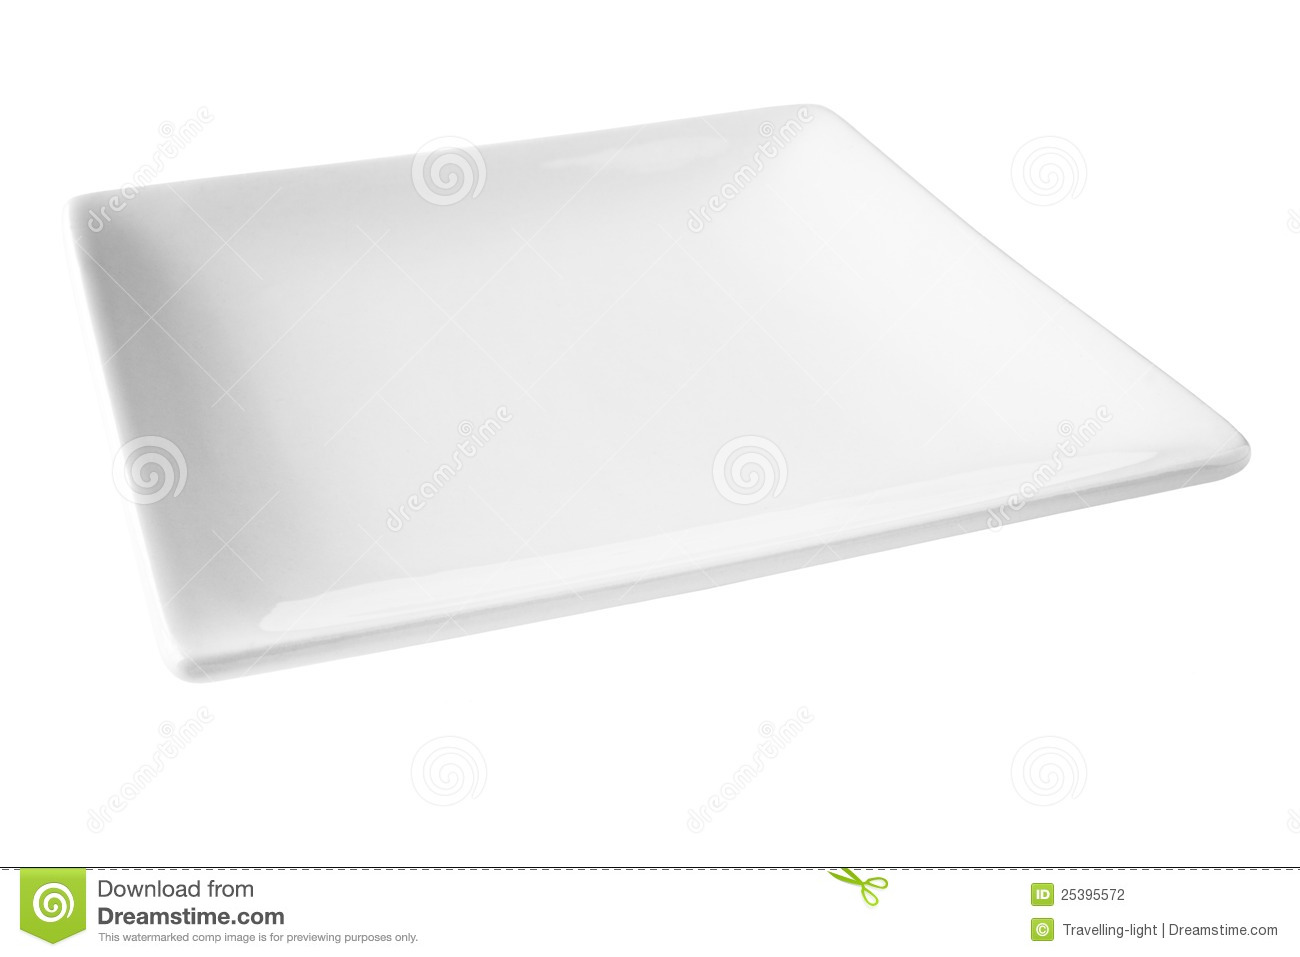 Royalty-Free Stock Photo  sc 1 st  Dreamstime.com & Square White Plate Isolated On White Stock Photo - Image of nobody ...